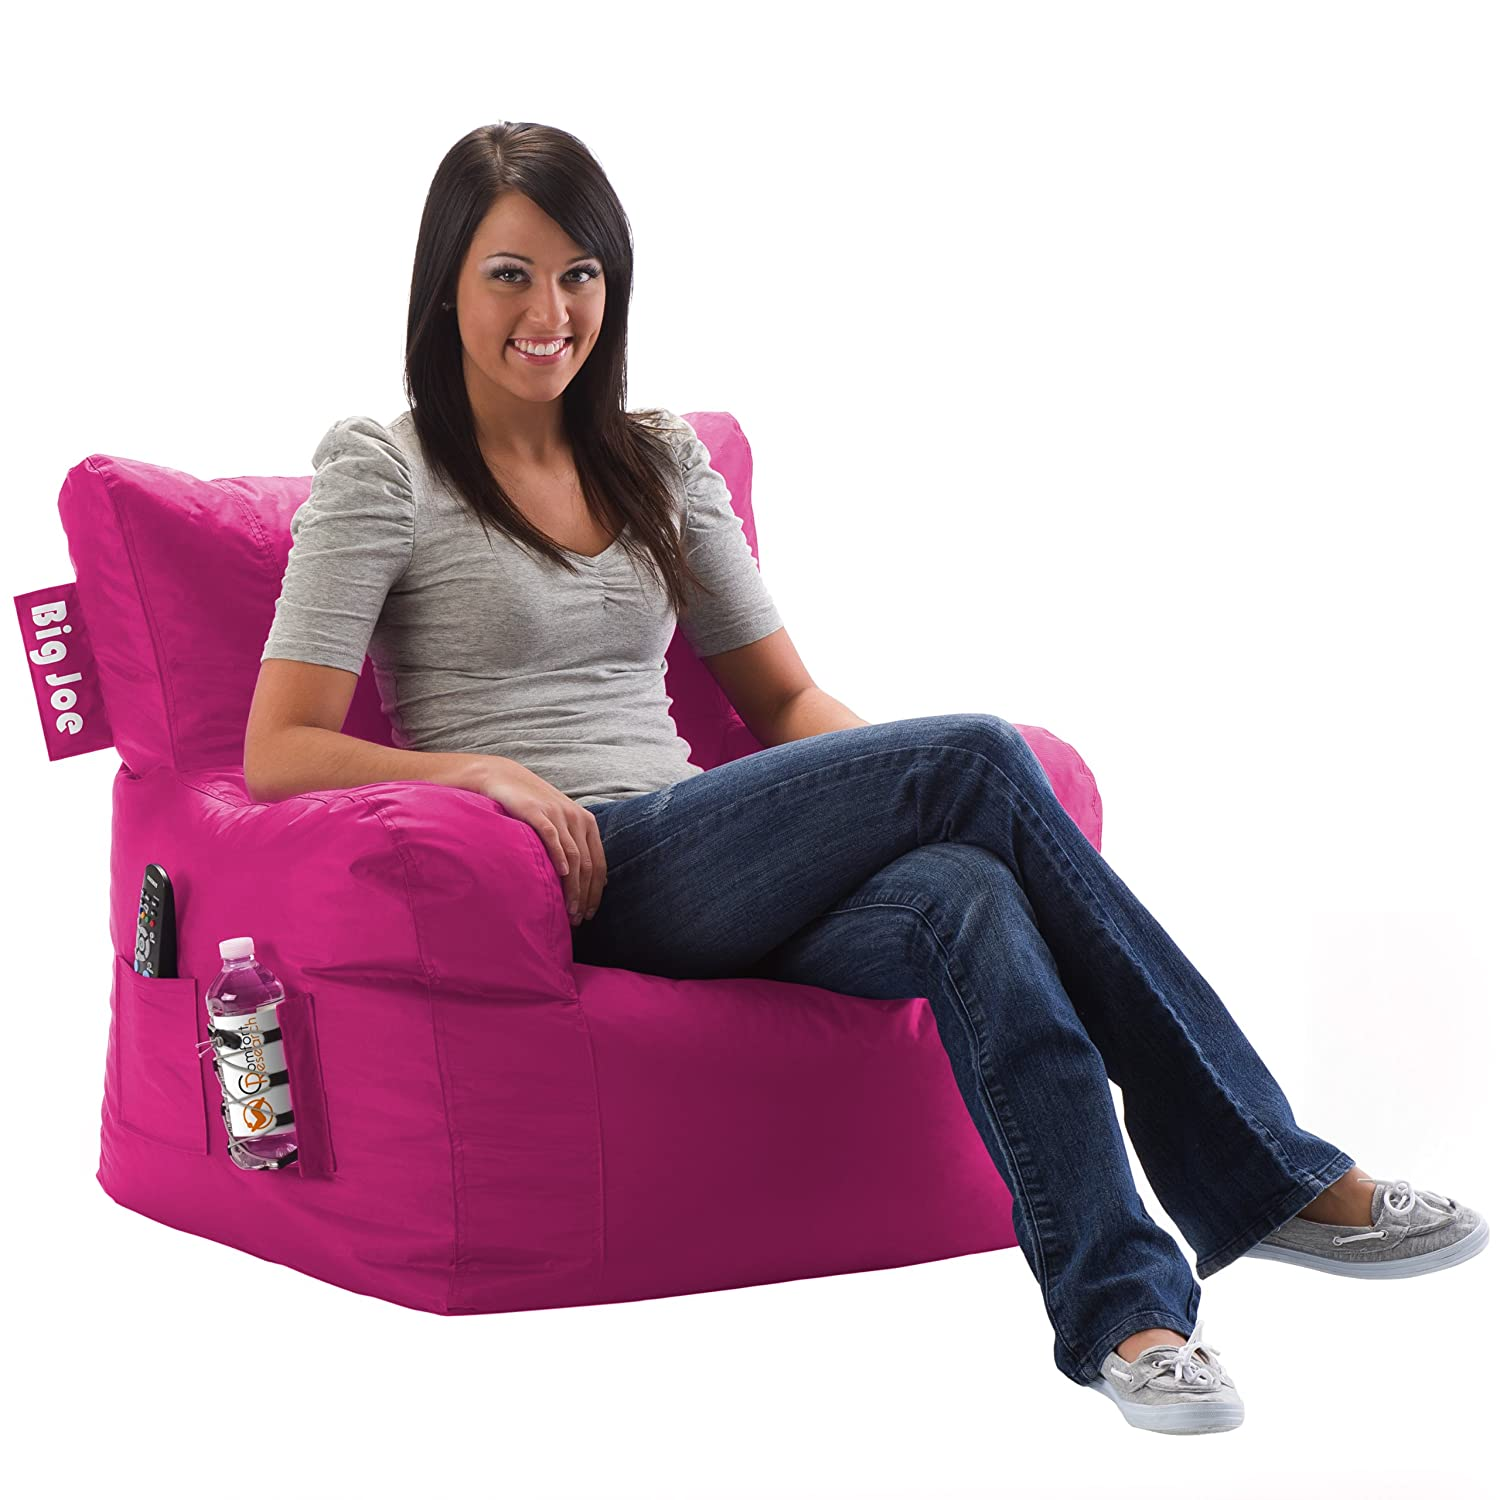 Pics s Bean Bag Chairs Cool And fy Sitting At Home